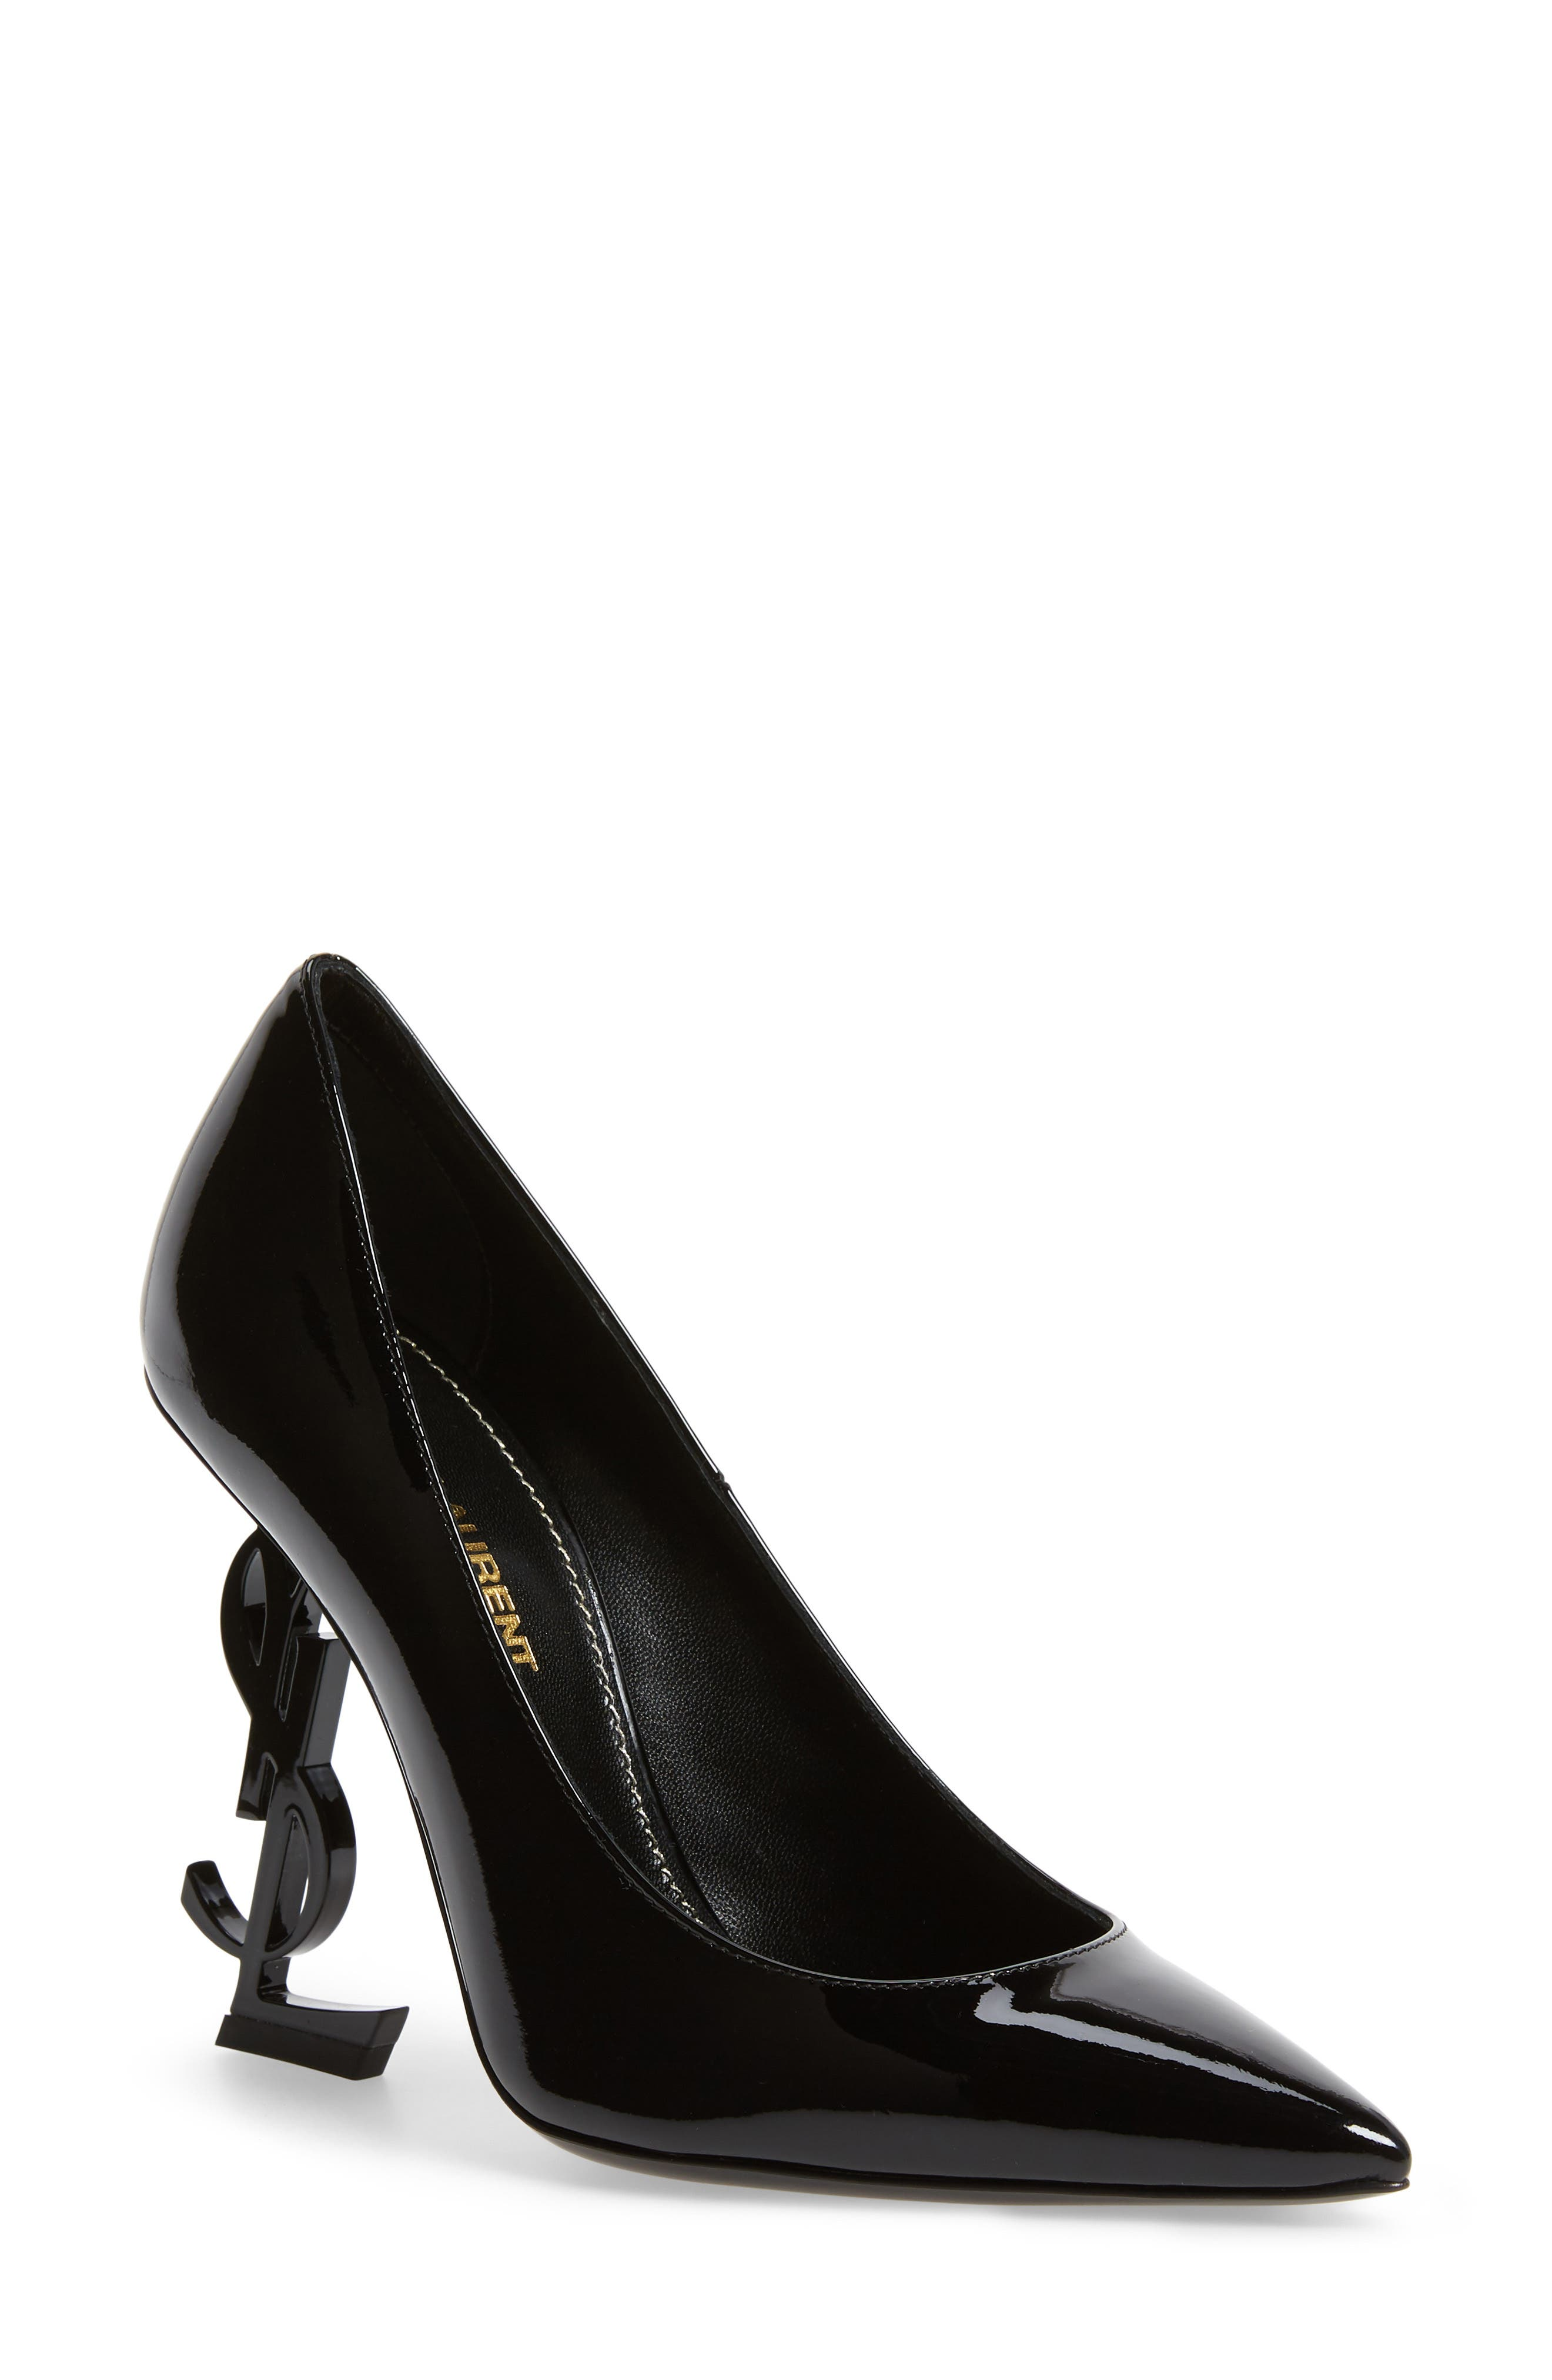 visit online Yves Saint Laurent Canvas Semi Pointed-Toe Pumps buy cheap for nice discount price zCc1JwXd